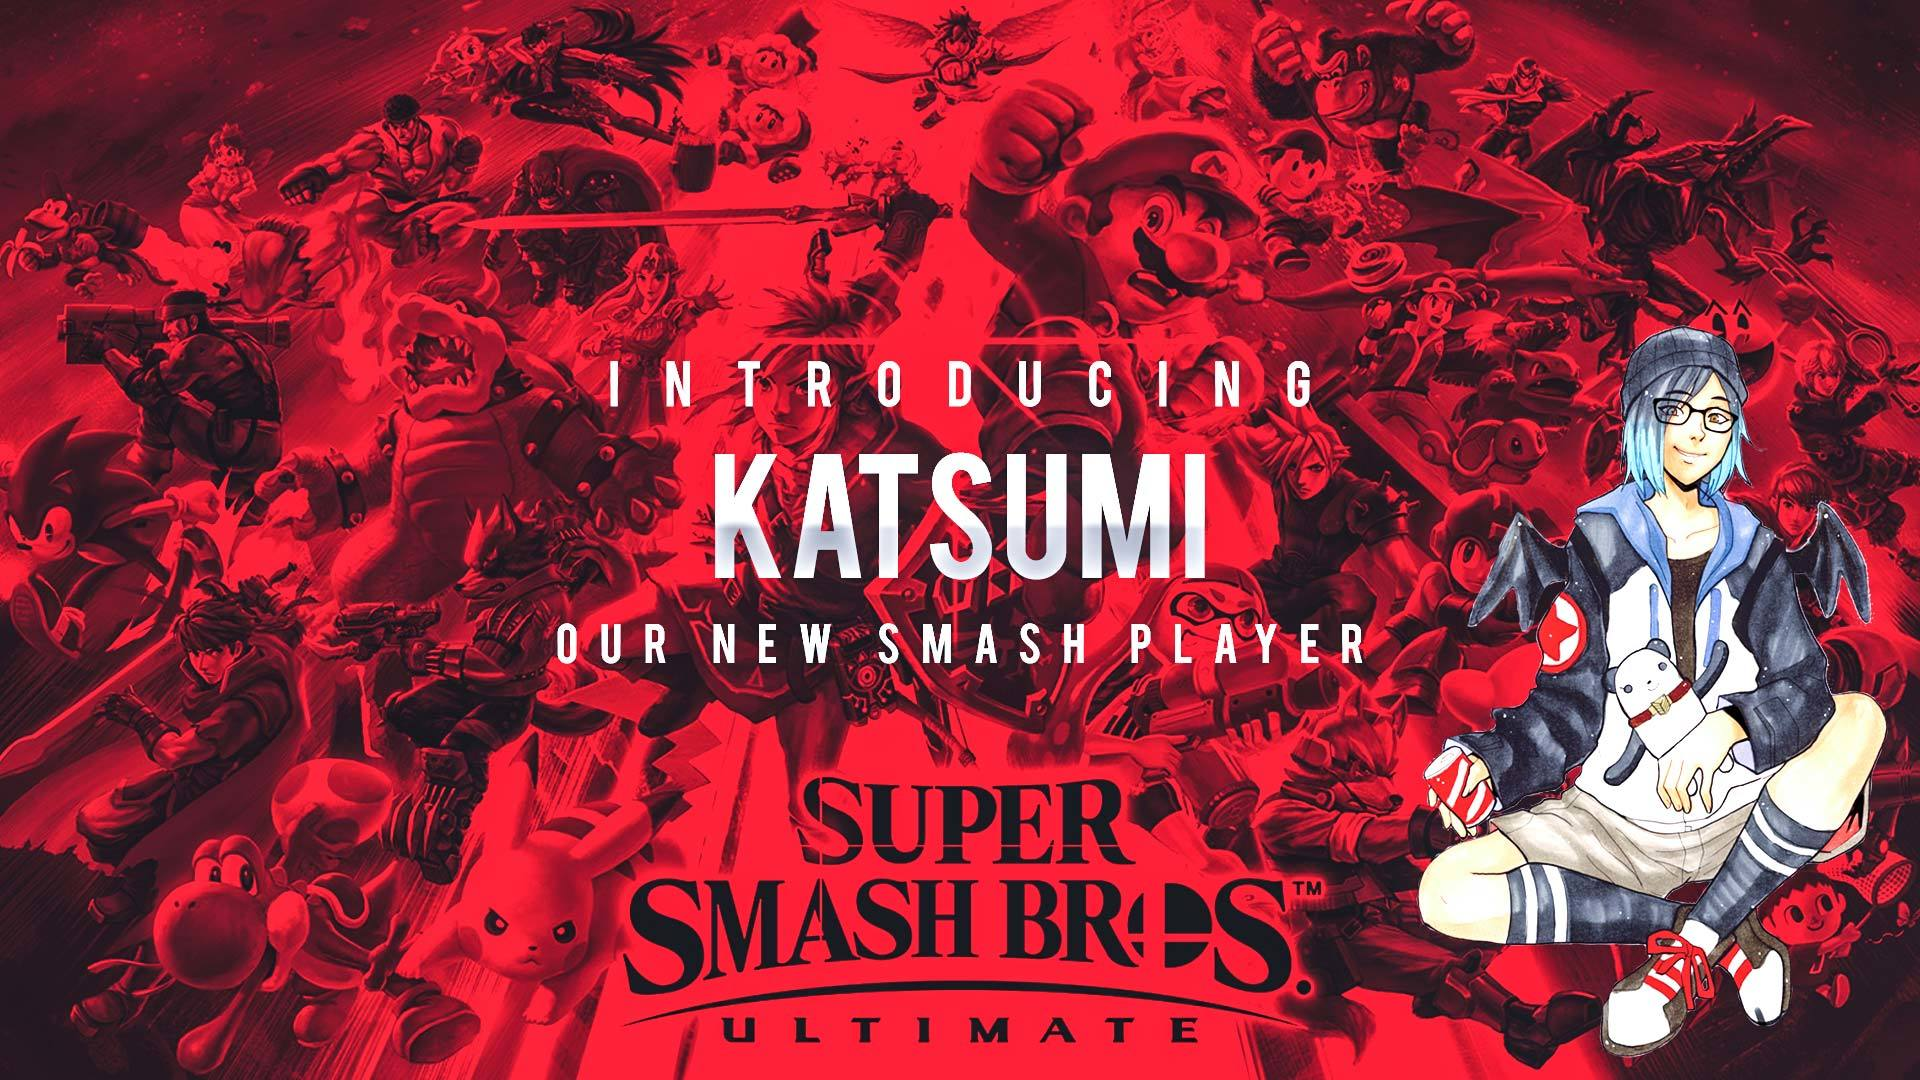 Katsumi joining web